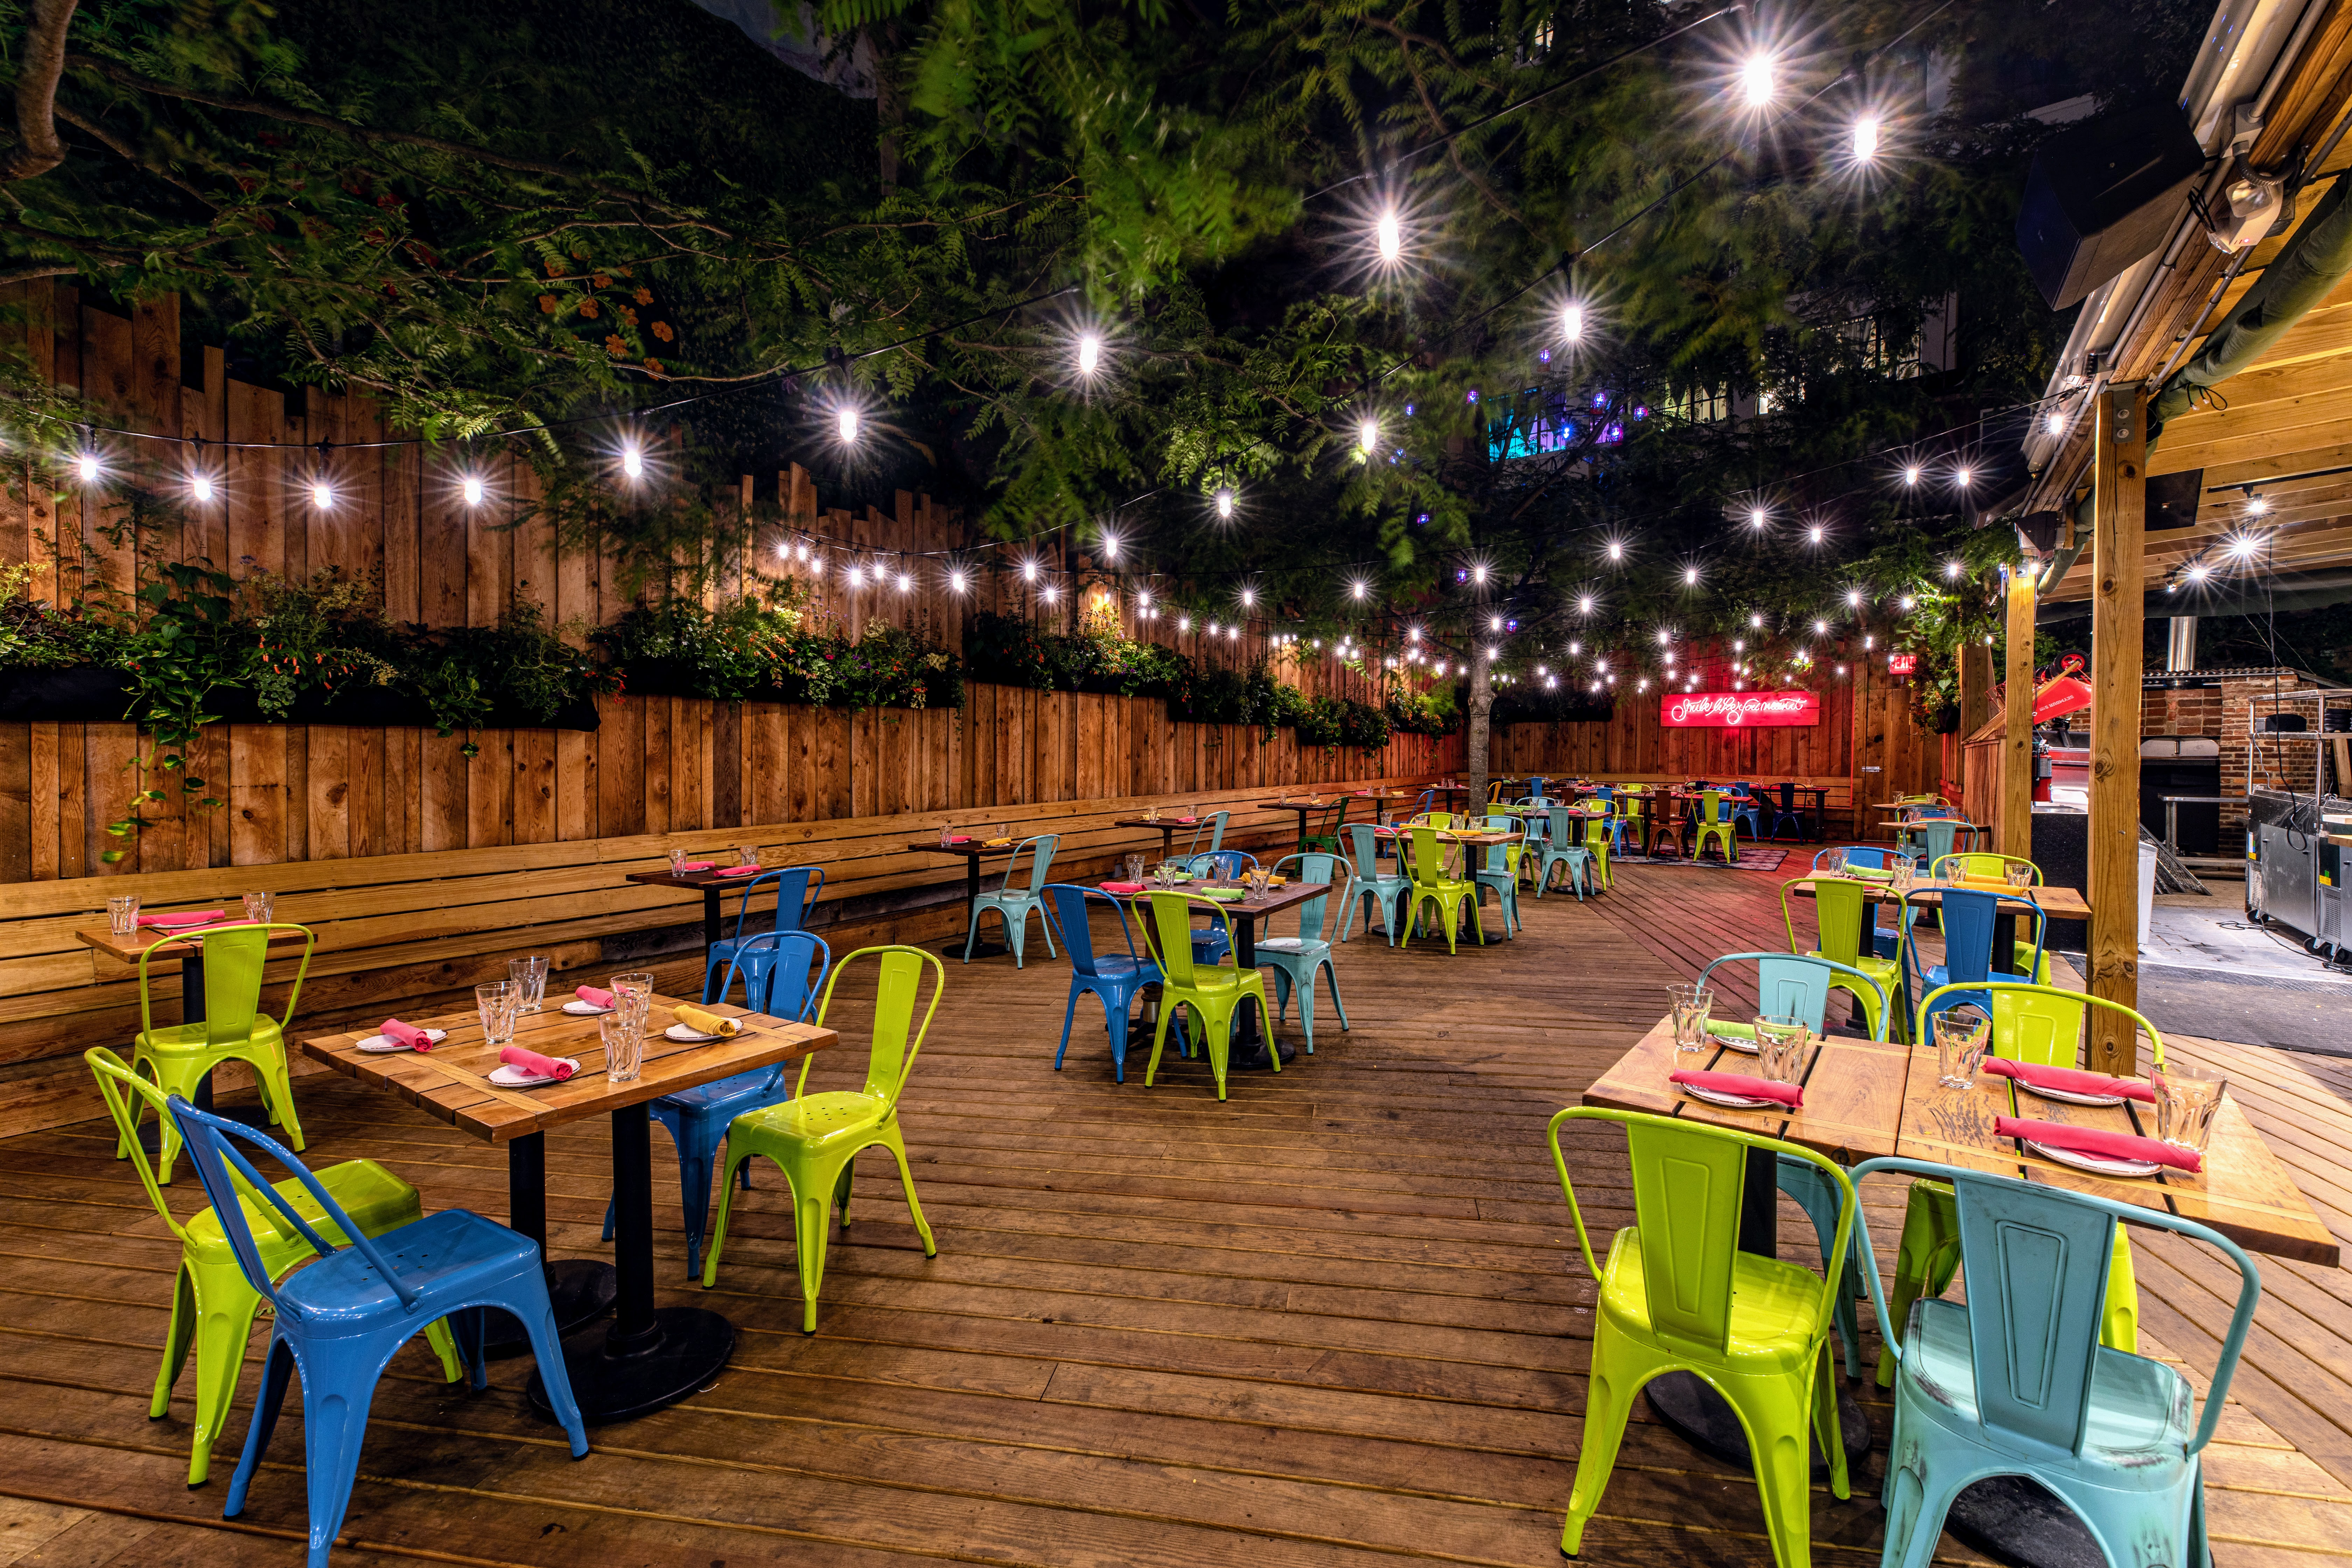 outdoor restaurant at night with string lights, colorful chairs and trees